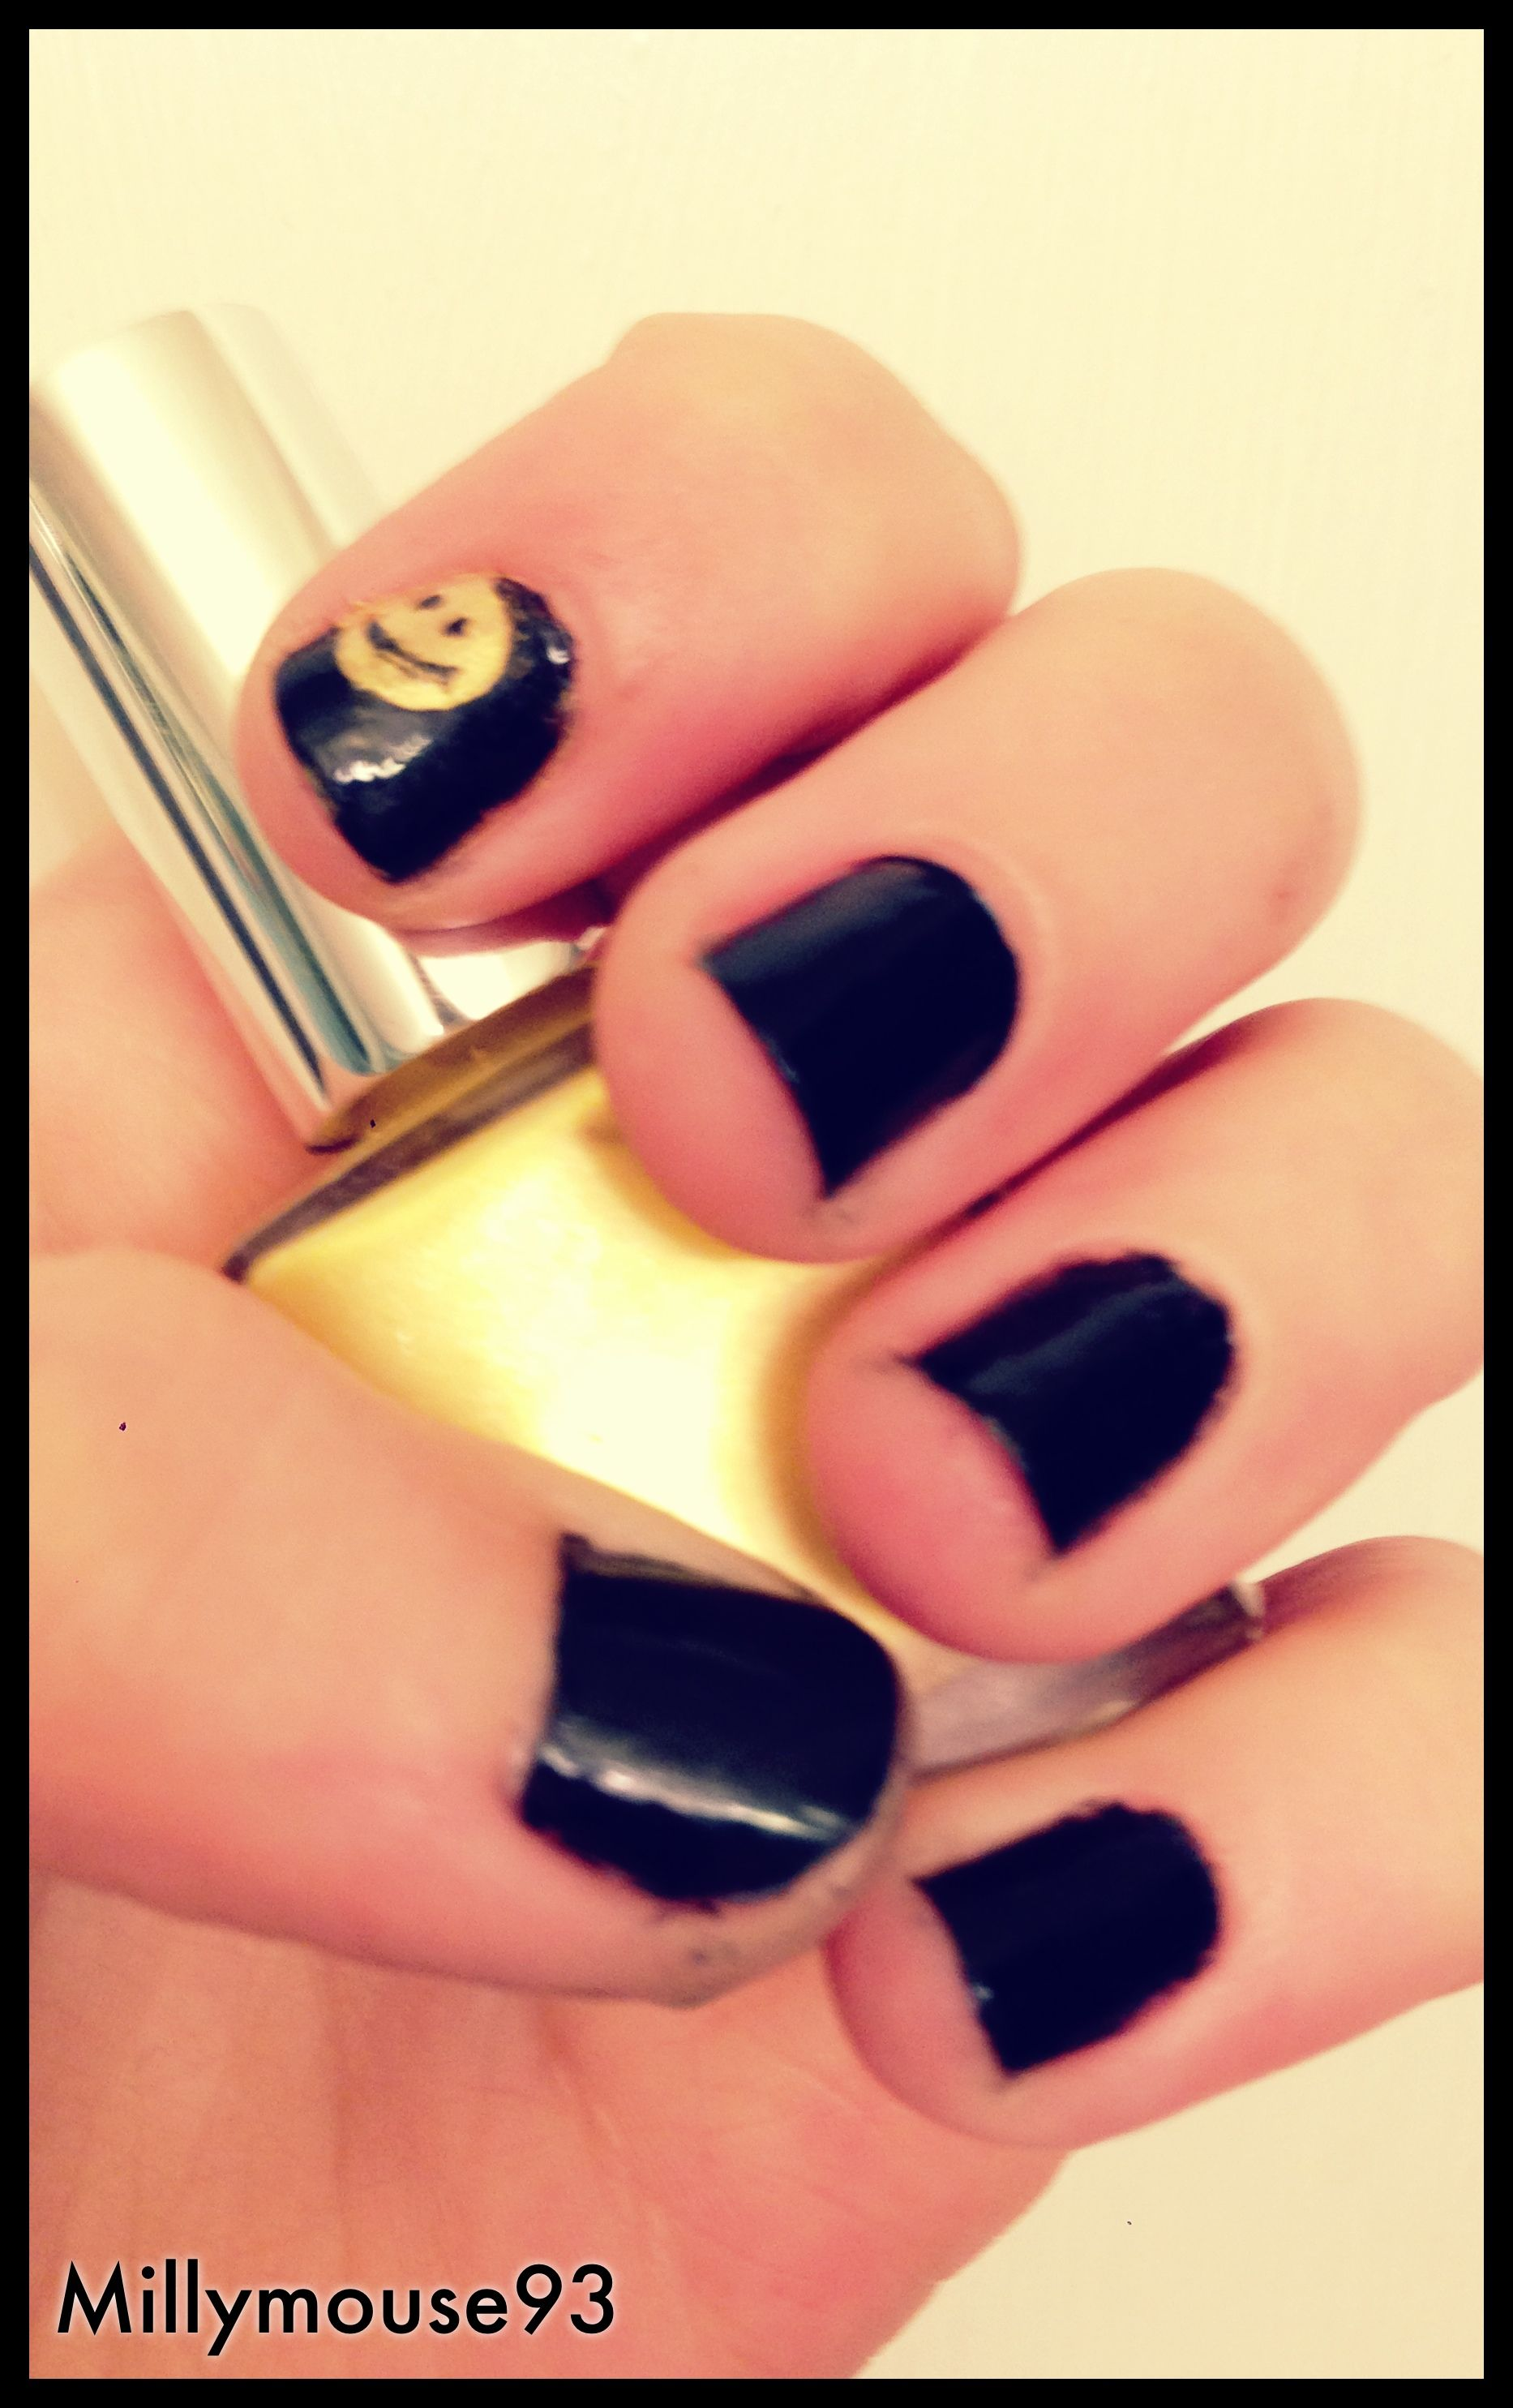 Be Happy Happy Smile Yellow Black Black And Yellow Nails Nail Art Nail Design Nail Nail Polish Nail Stamping Konad Nail Polish Nails Nail Stamping While many smiley face manicures are brightly colored, you can create just as cheery a nail look using more muted tones. nails nail stamping